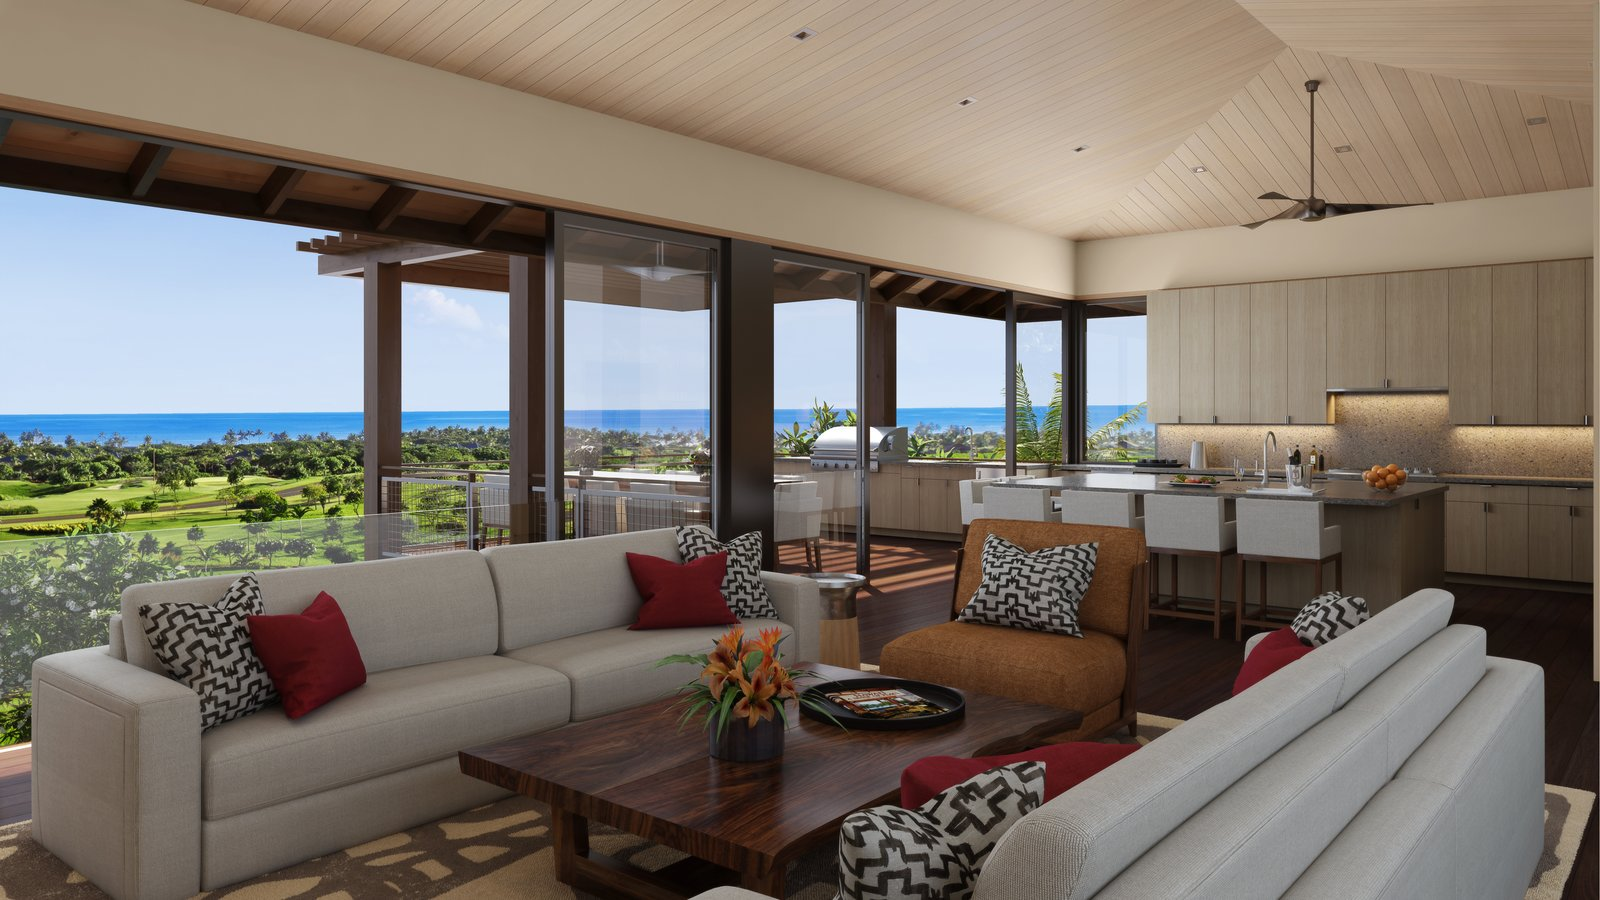 Living Room, Chair, Coffee Tables, and Sofa The open kitchen and living area are perfect for casual entertaining.  Photo 4 of 14 in A Breezy Hawaiian Residence by Olson Kundig Hits the Market at $6.95M